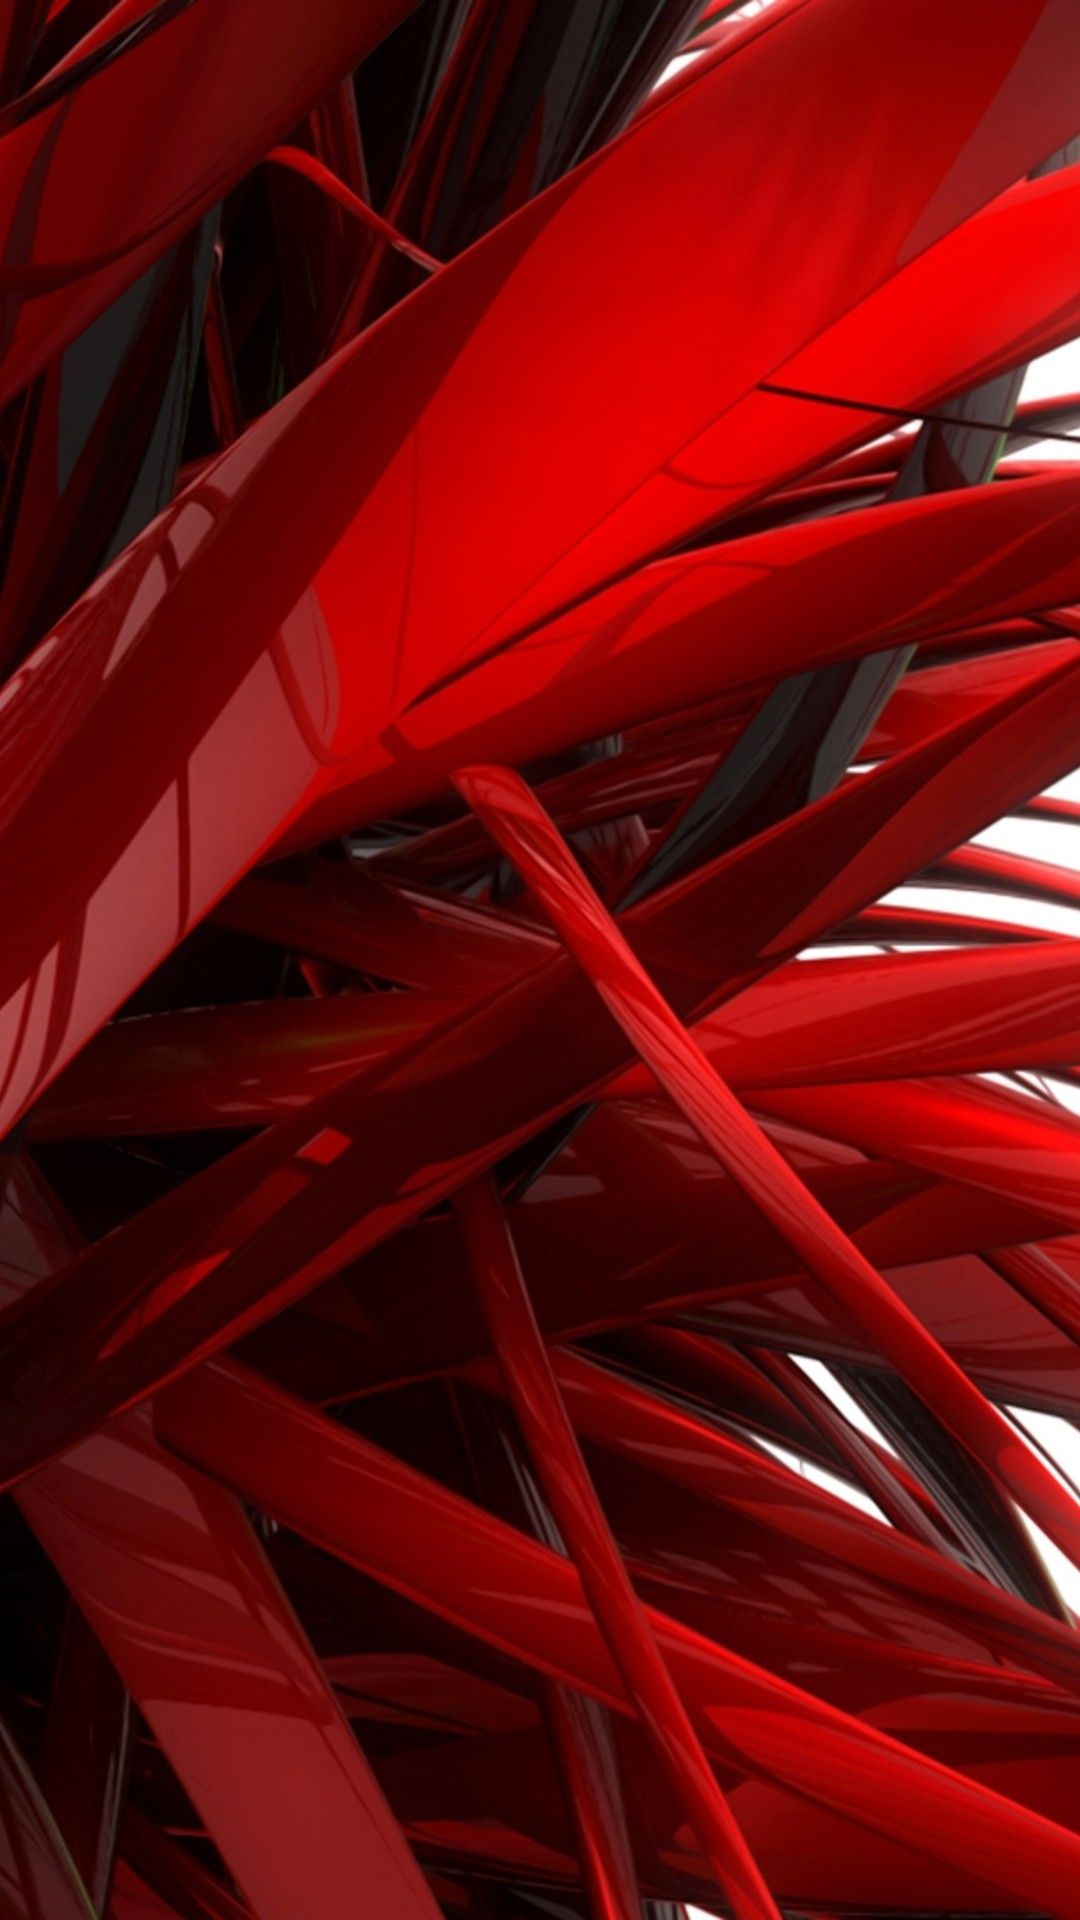 Wallpaper Download 1080x1920 Red Lines Abstract Awesome 3d And